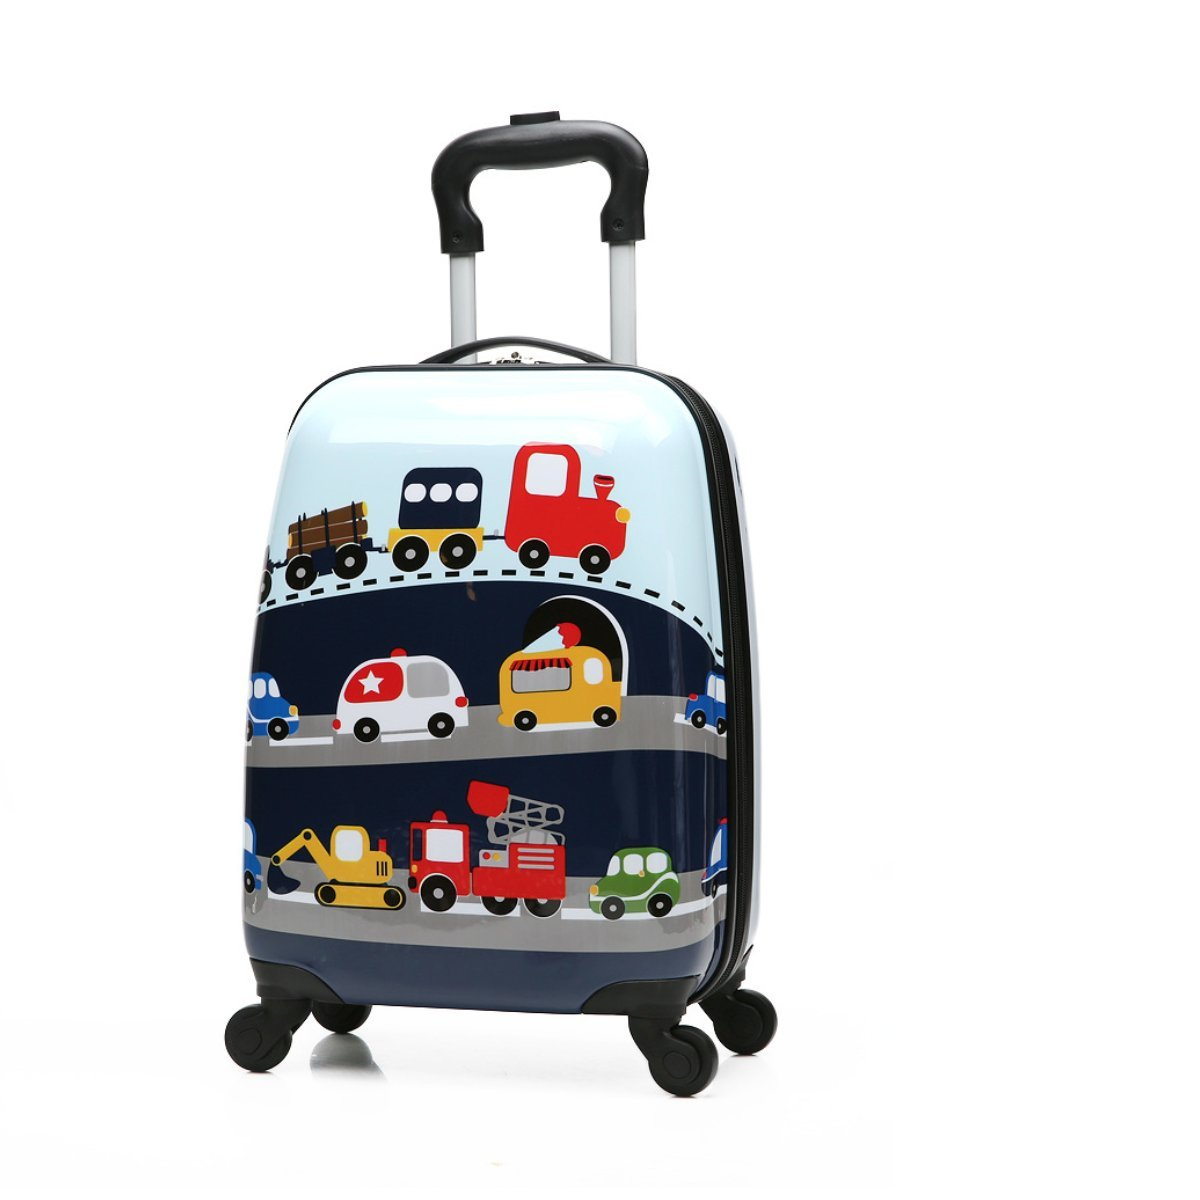 Winsday 18'' Kids Carry On Luggage Upright Hard Side Hard Shell Suitcase Travel Trolley Luggages ABS for School Girls Boys Teens (Car Pattern)